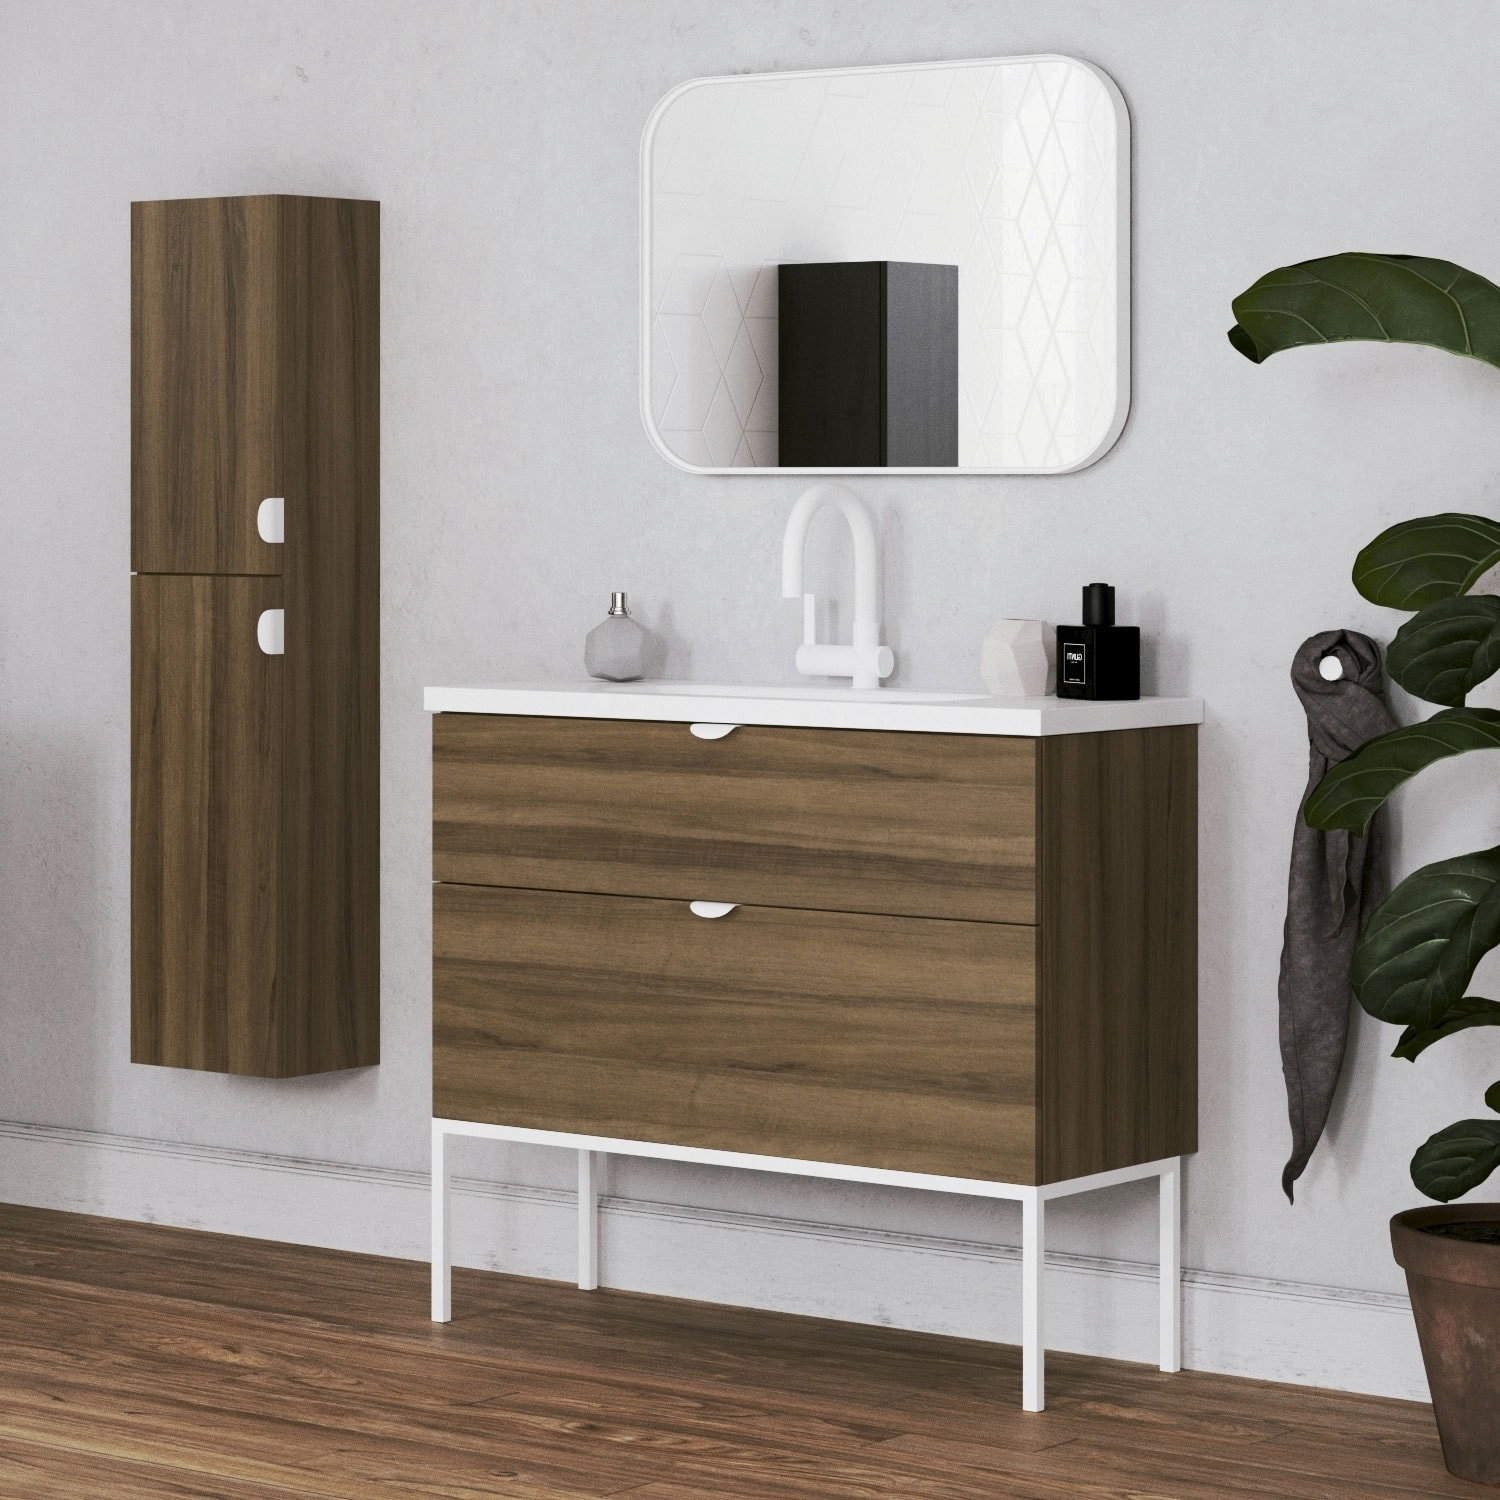 32 Modern Bathroom Vanity Smug Walnut Wood White Handle And Legs 32 X 33 X 18 Cabinet Sink On Sale Overstock 30600191